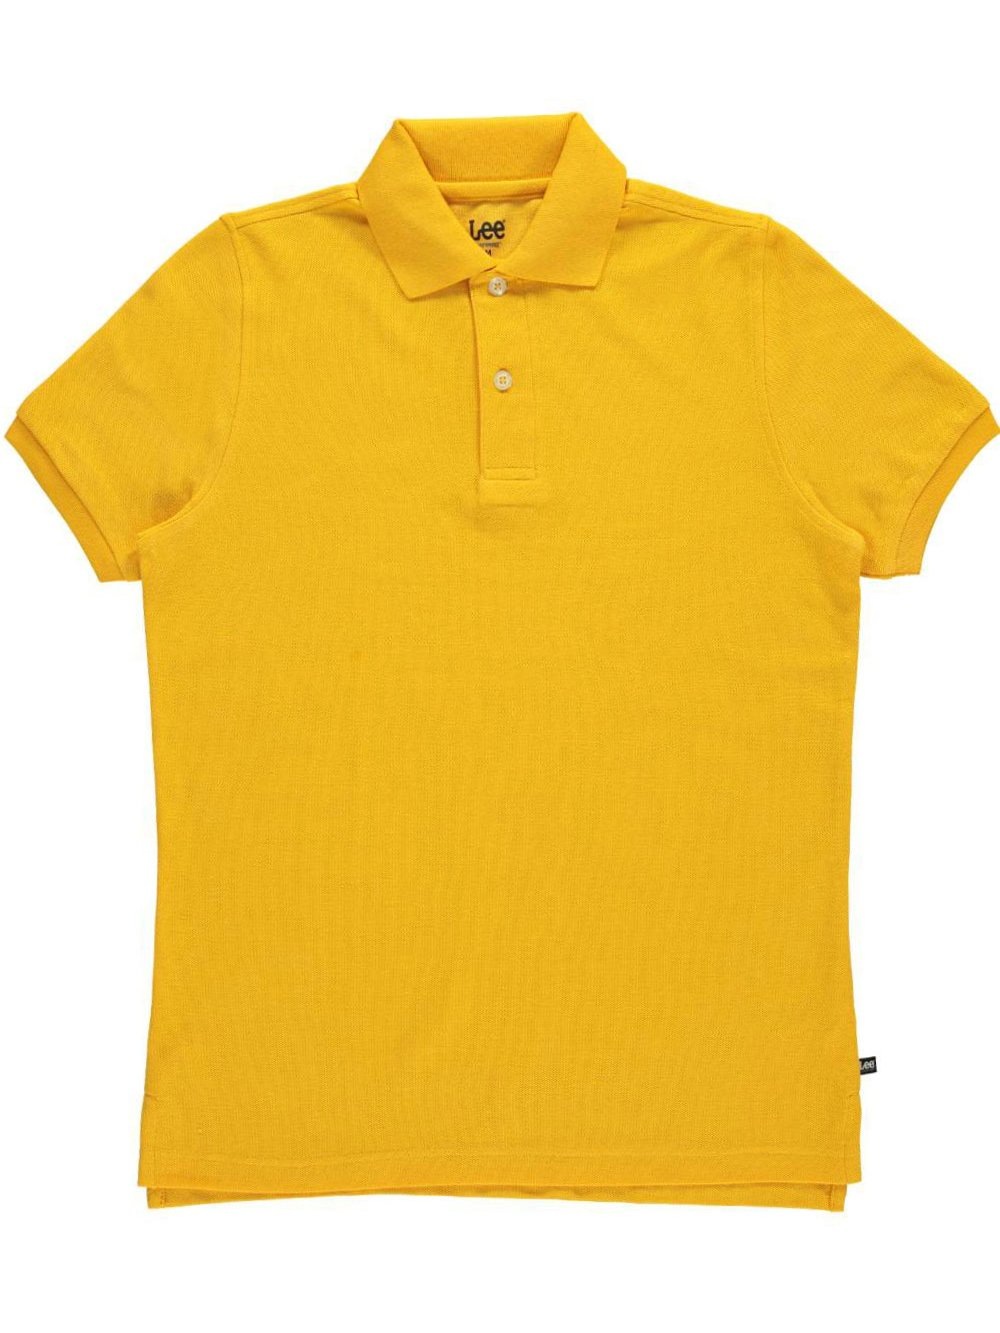 Lee Uniforms Standard Fit S/S Unisex Pique Polo 5001K